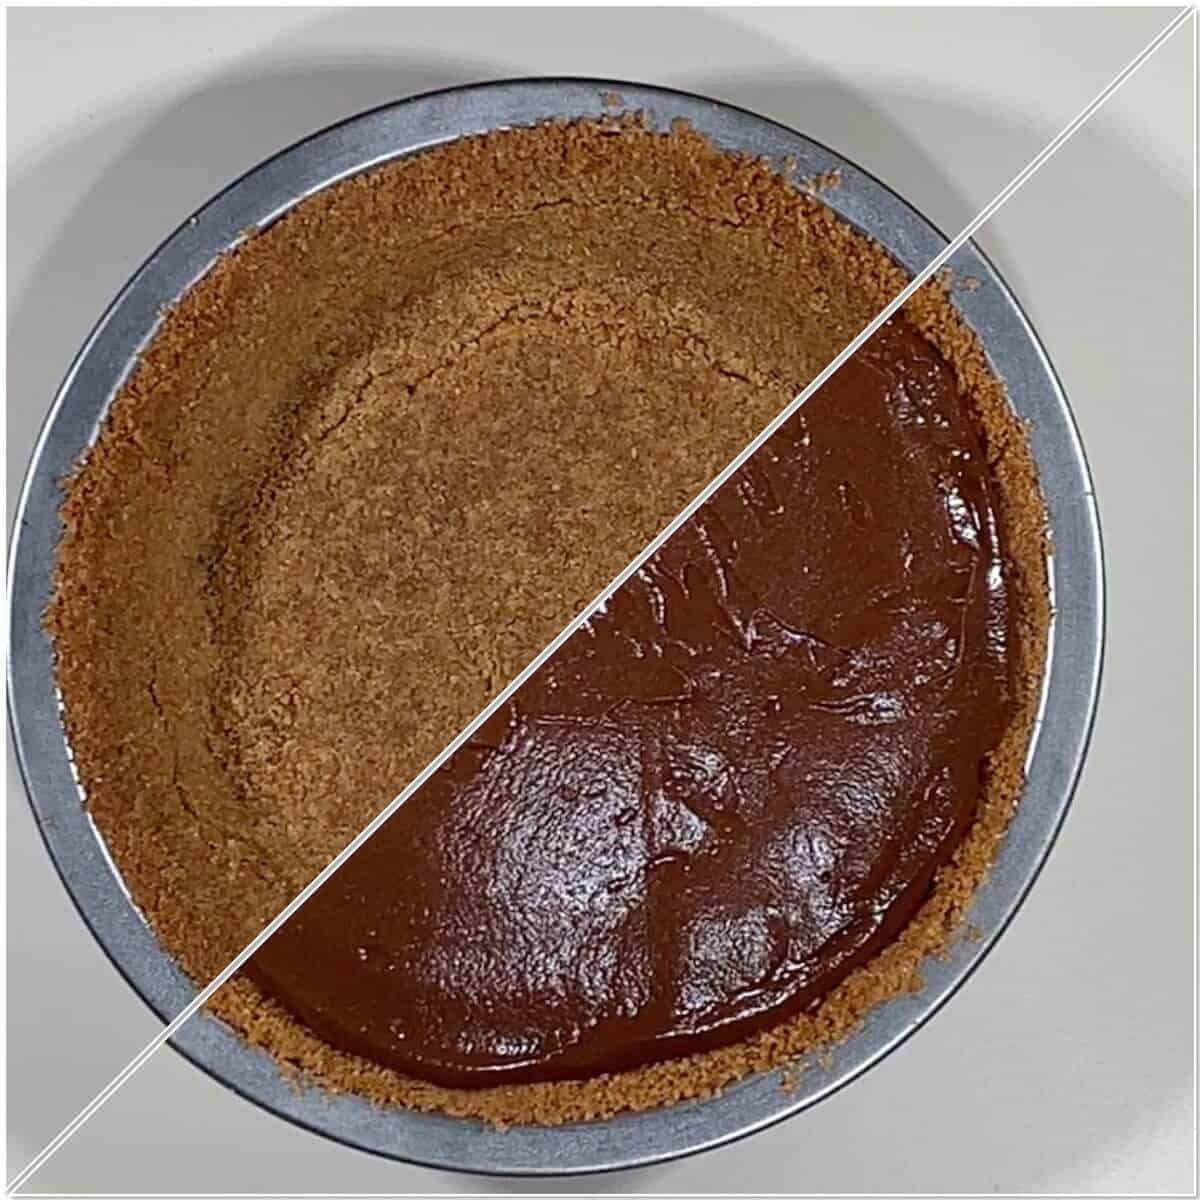 Filling the graham cracker crust with Chocolate Cream Pie filling collage